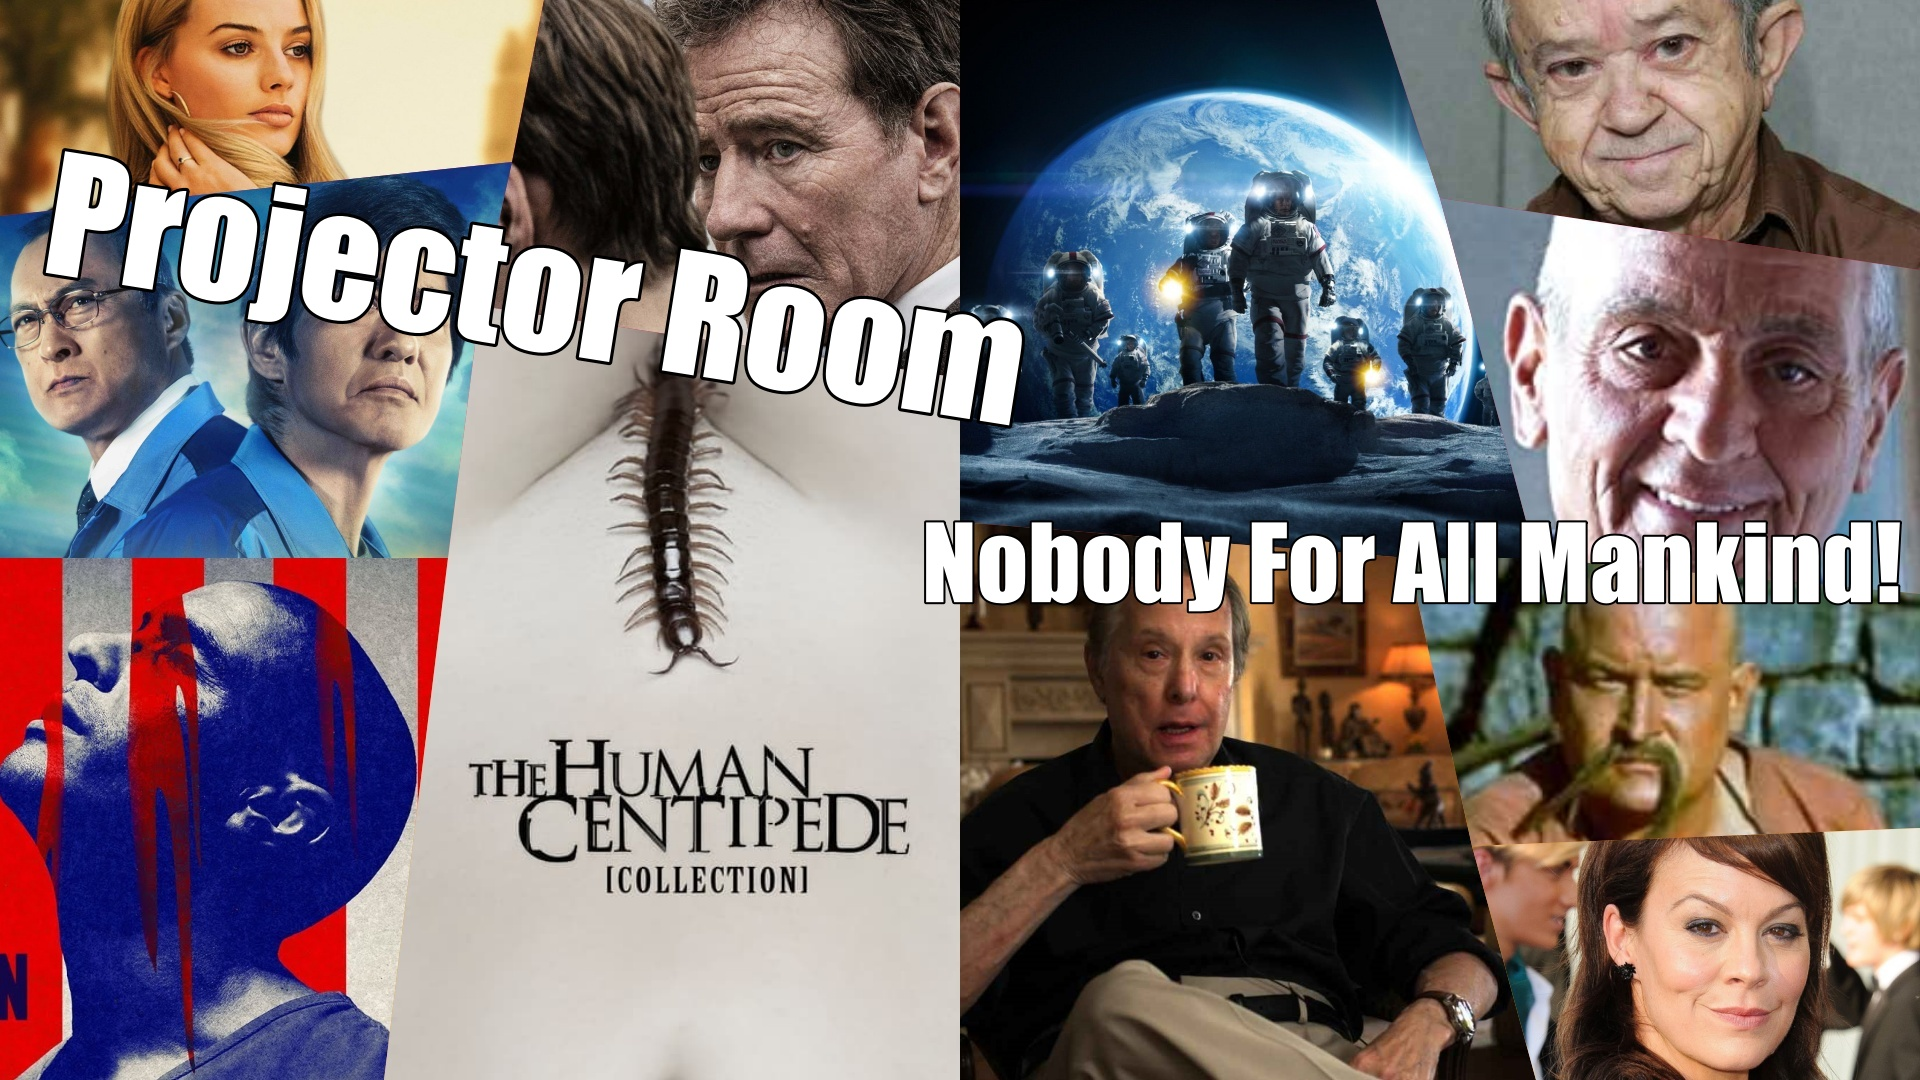 """Podcast: Projector Room #86 """"Nobody For All Mankind!"""" 22/04/2021"""